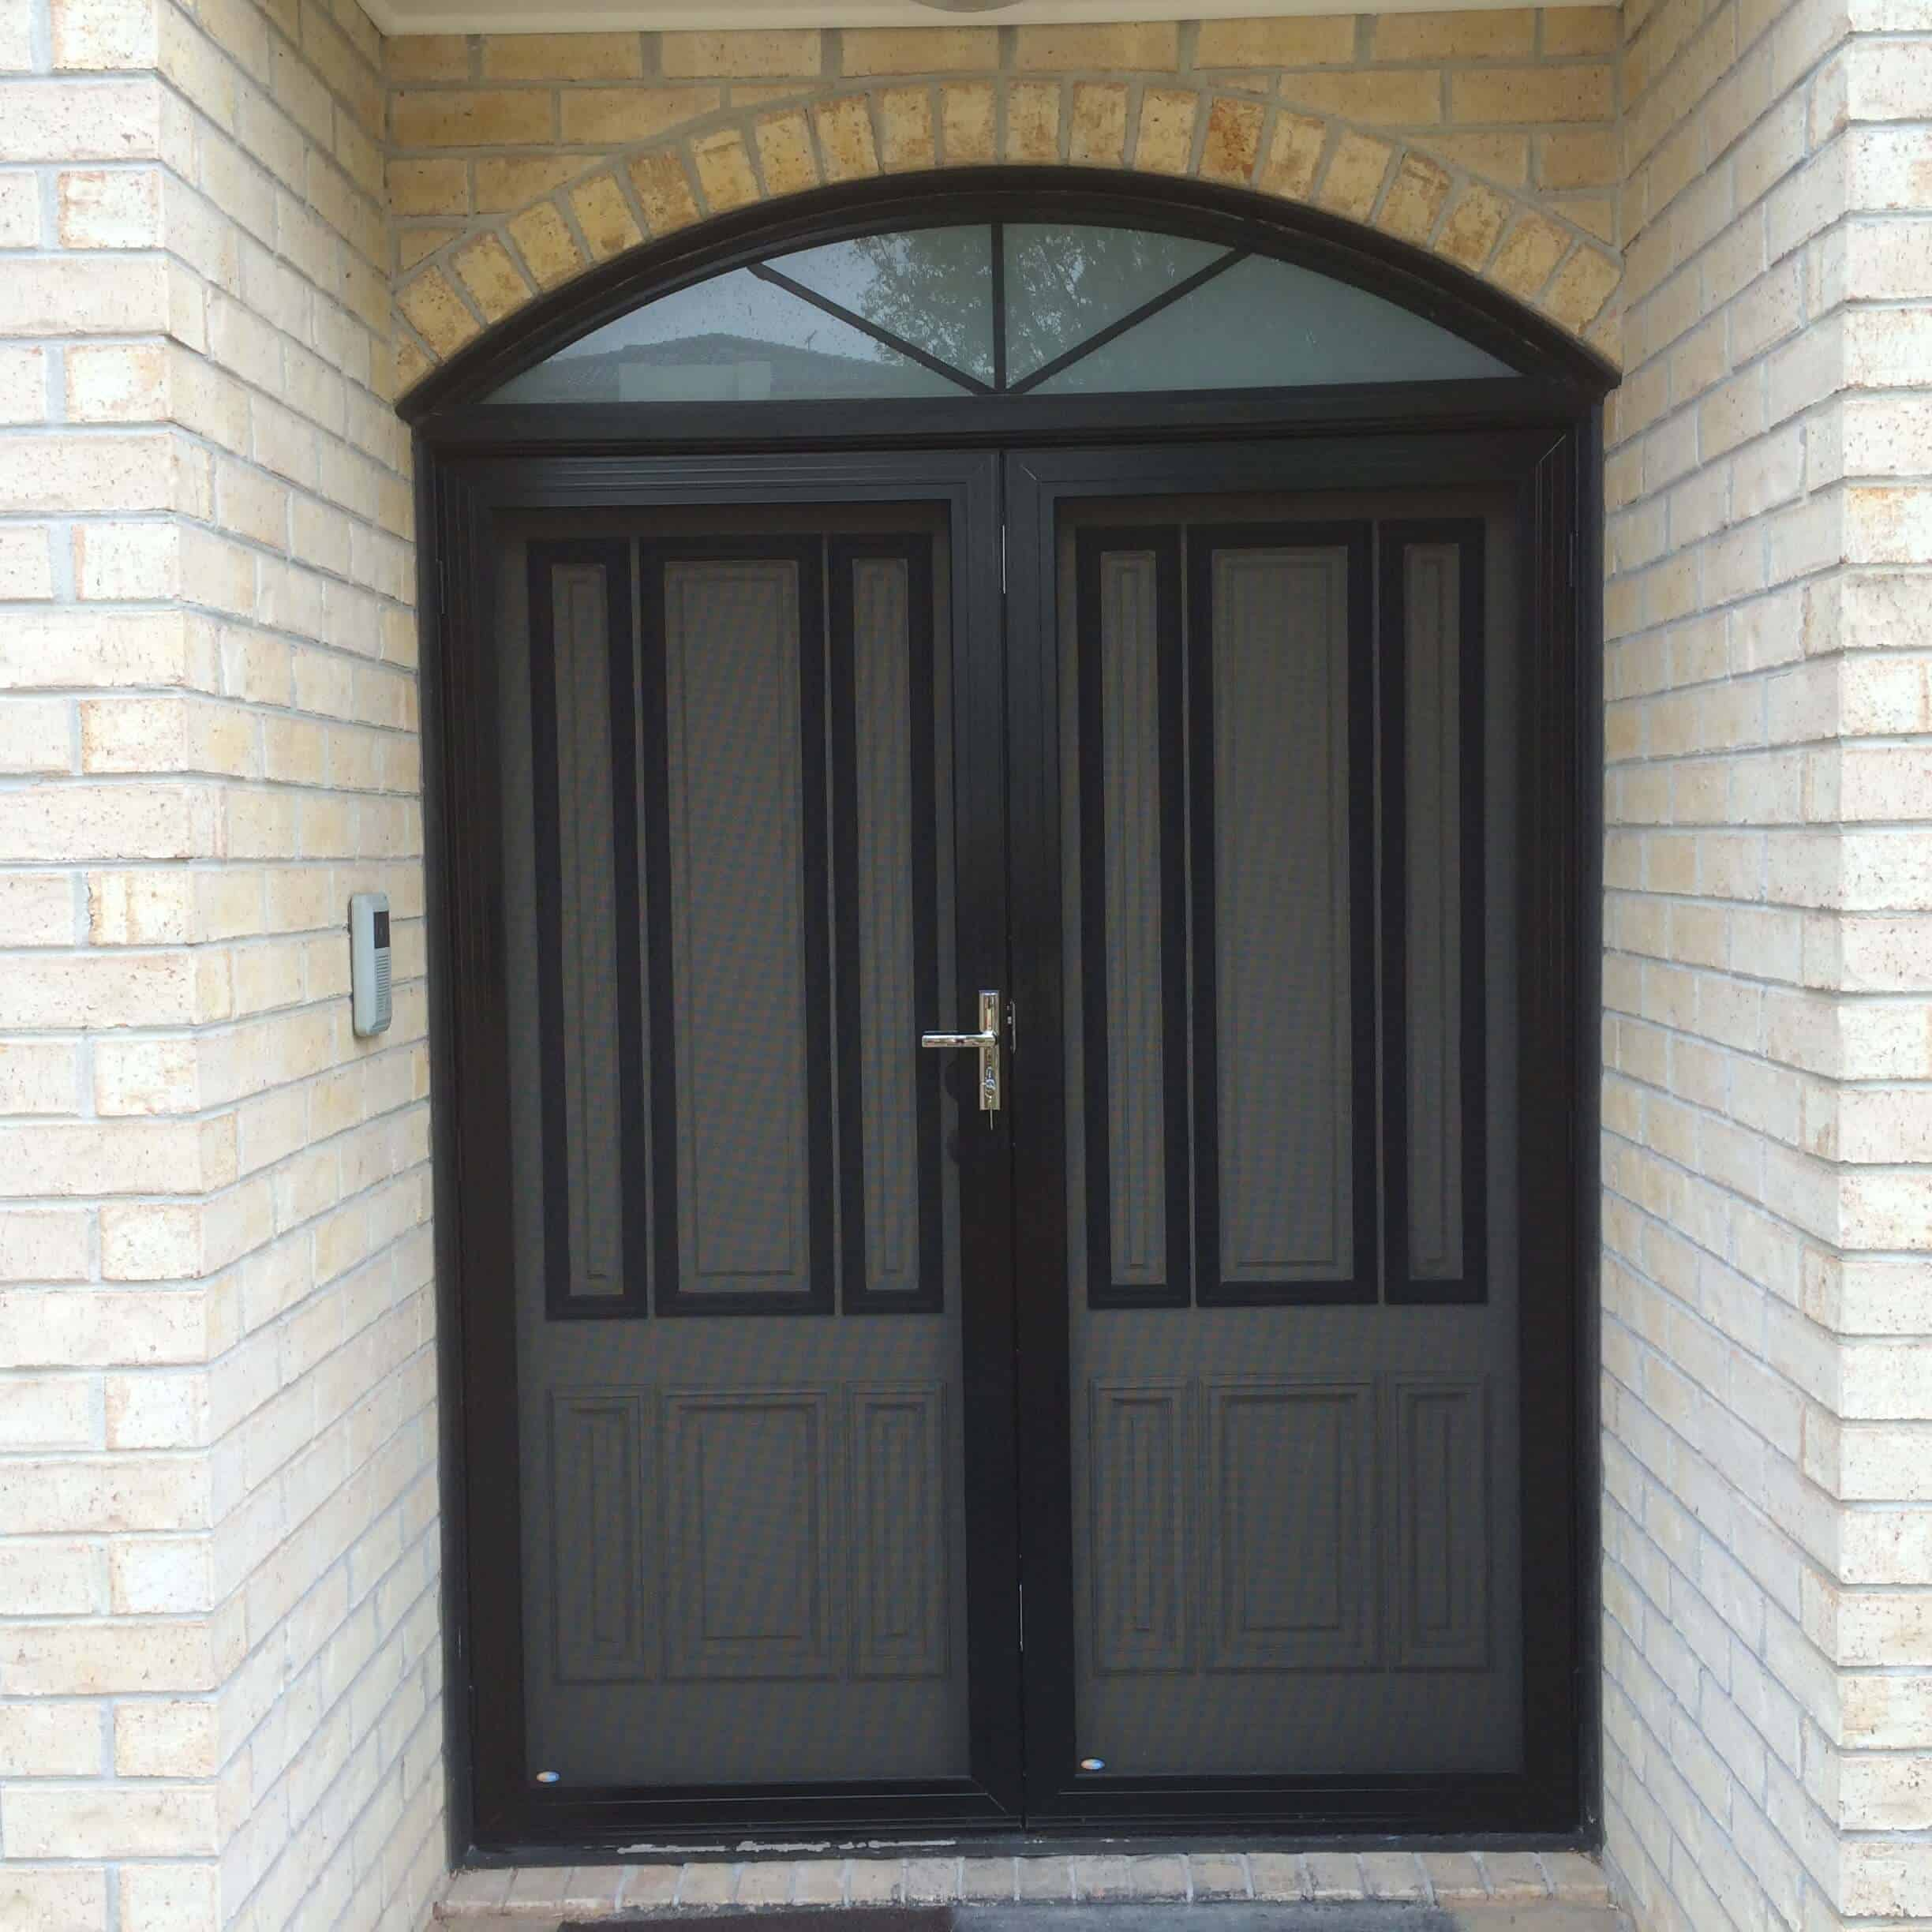 Crimsafe Regular Double Security Door